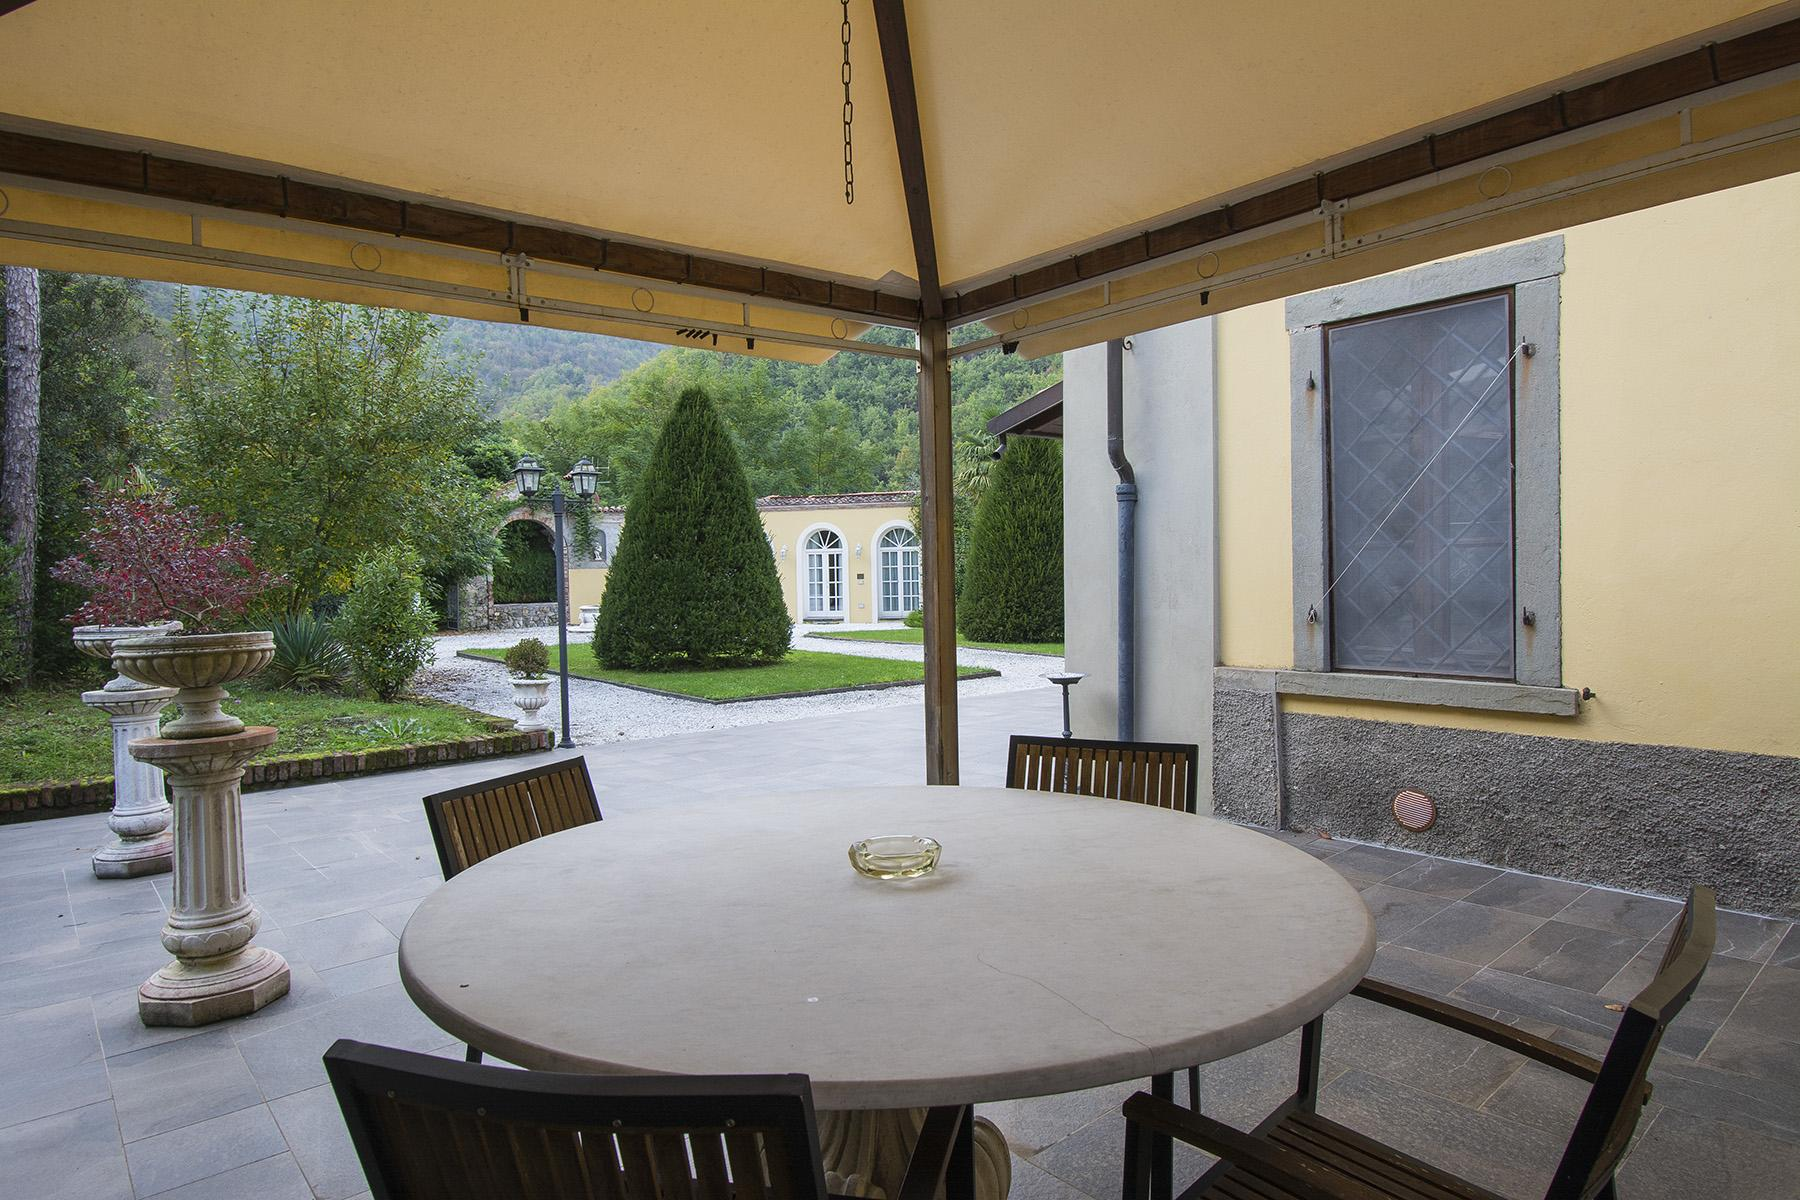 Luxury Renaissance Villa on the hills of Garfagnana Region - 21